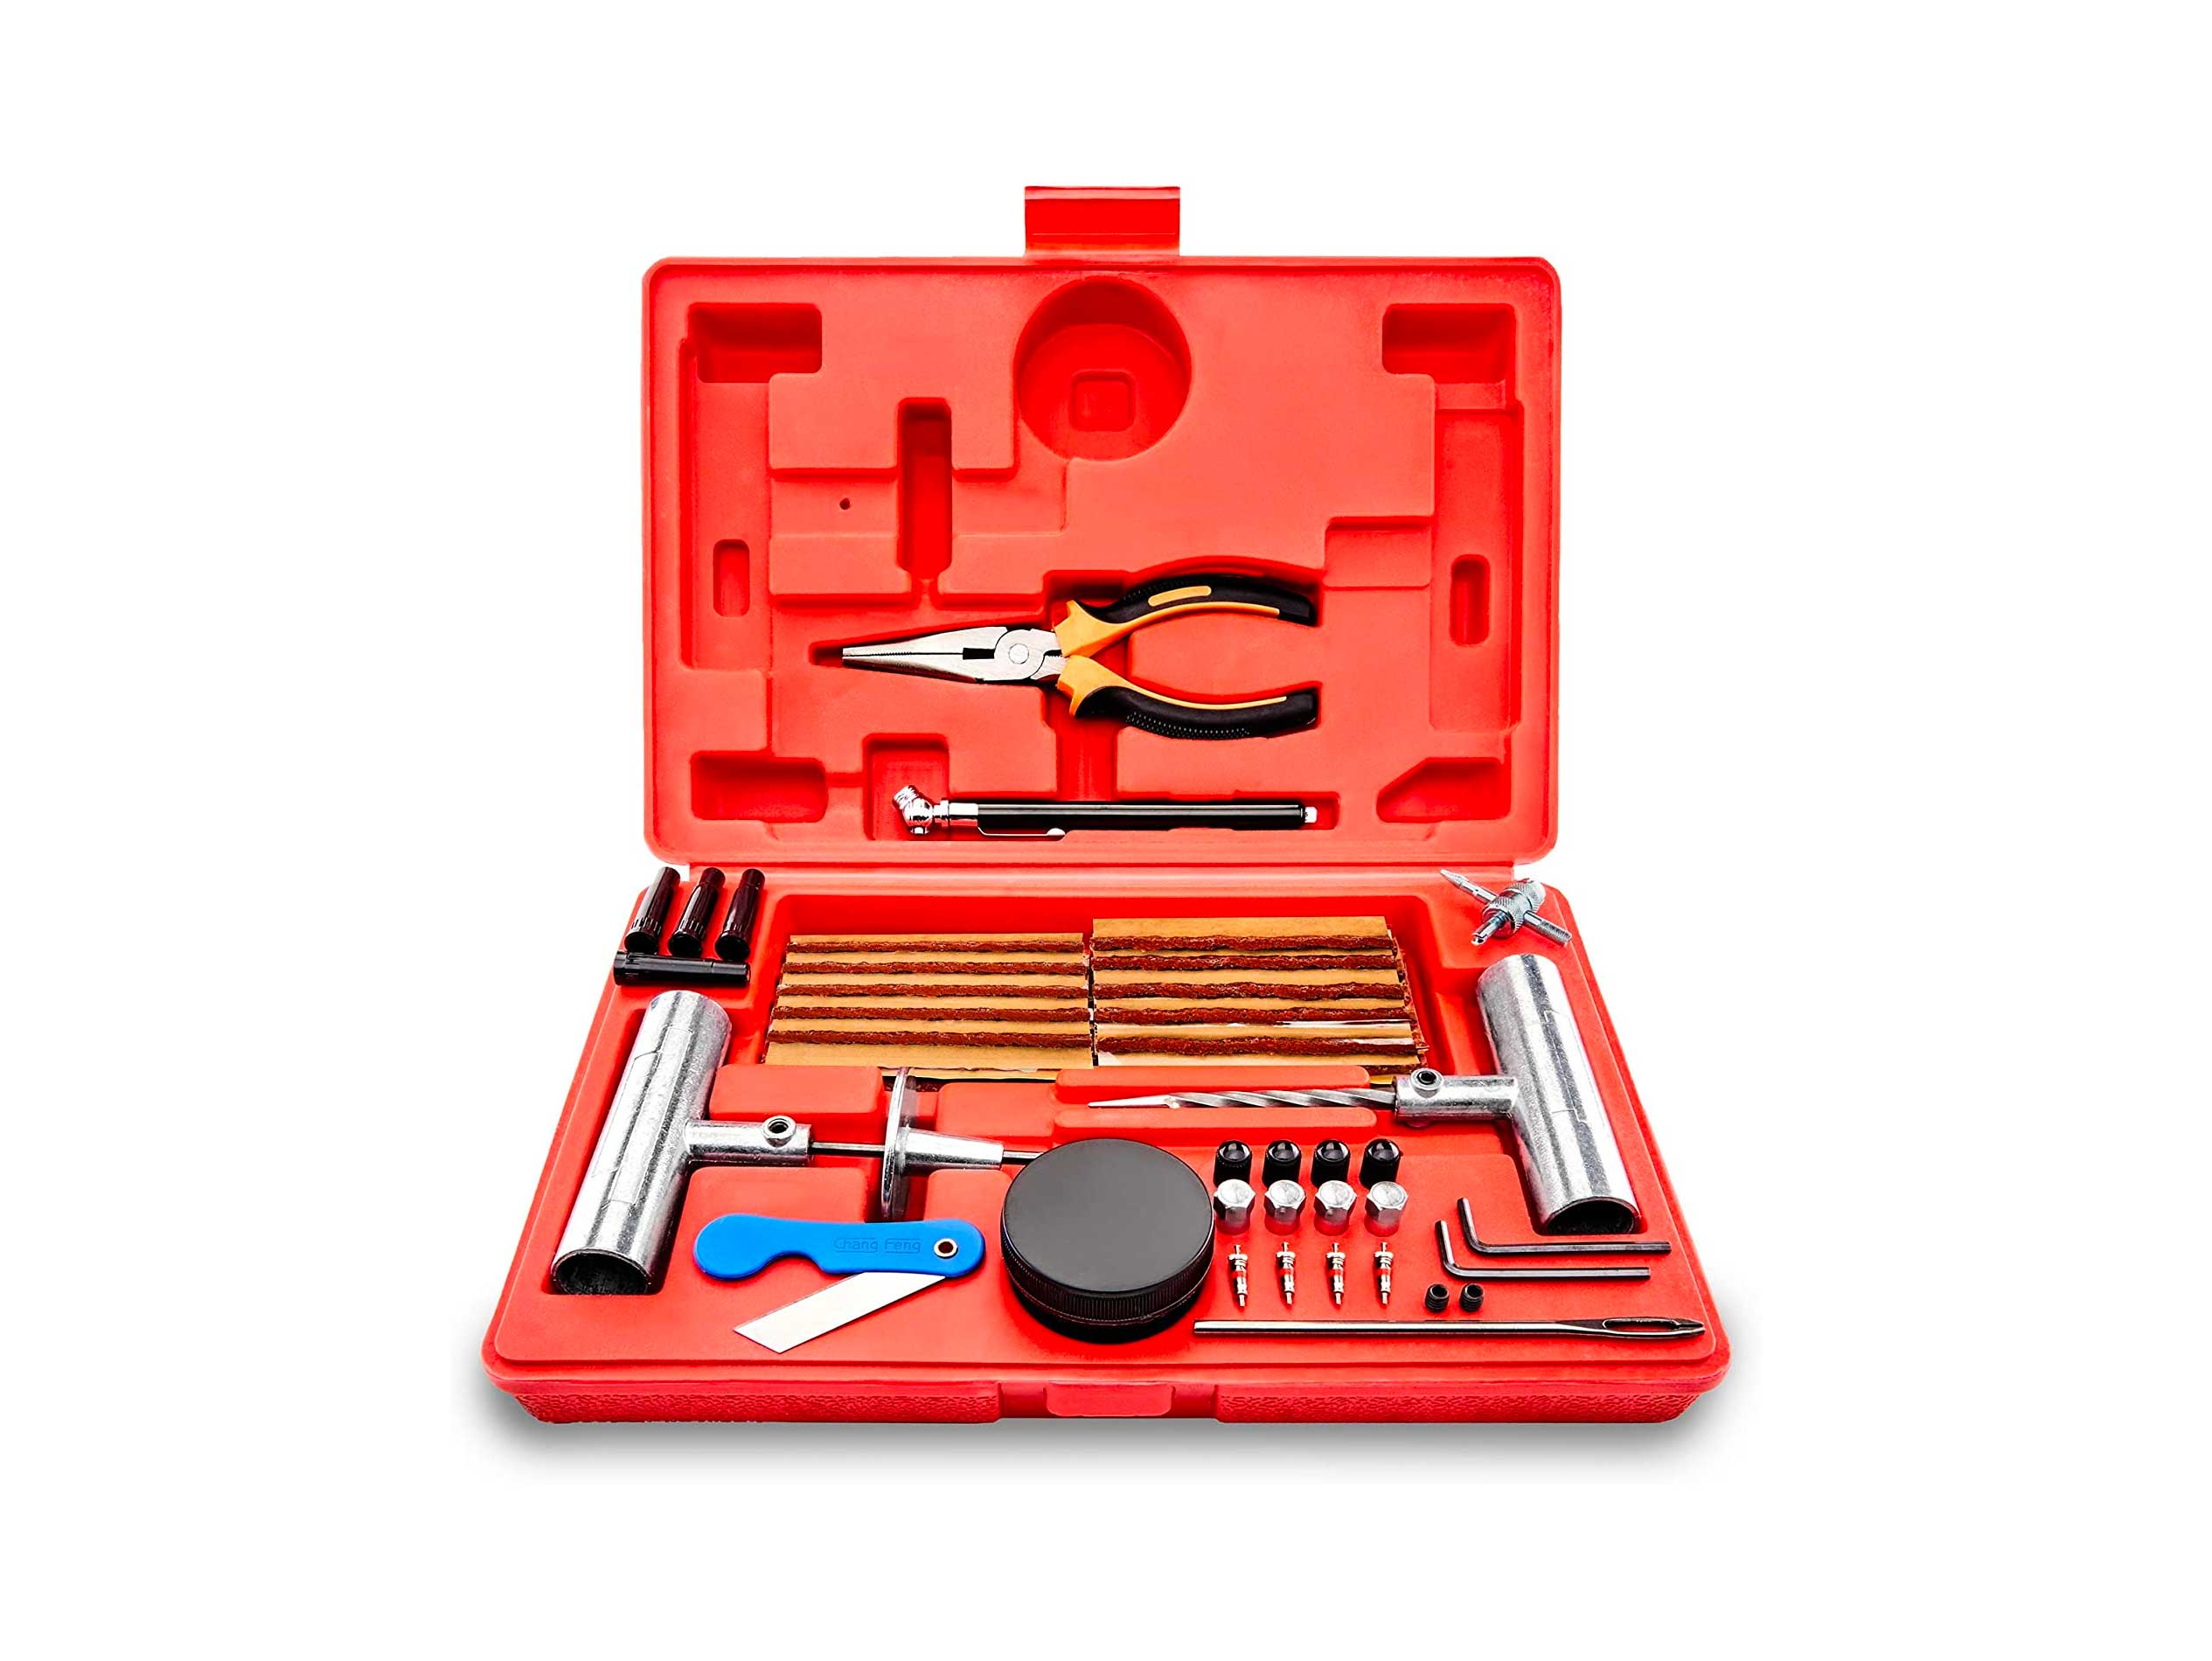 Tooluxe Universal Heavy Duty Tire Repair Kit | 57 Piece Value Pack | Fix Punctures and Plug Flats | Ideal for Cars, Trucks, Motorcycle, ATV, Jeeps, Off Road Vehicles, RV, Tractors